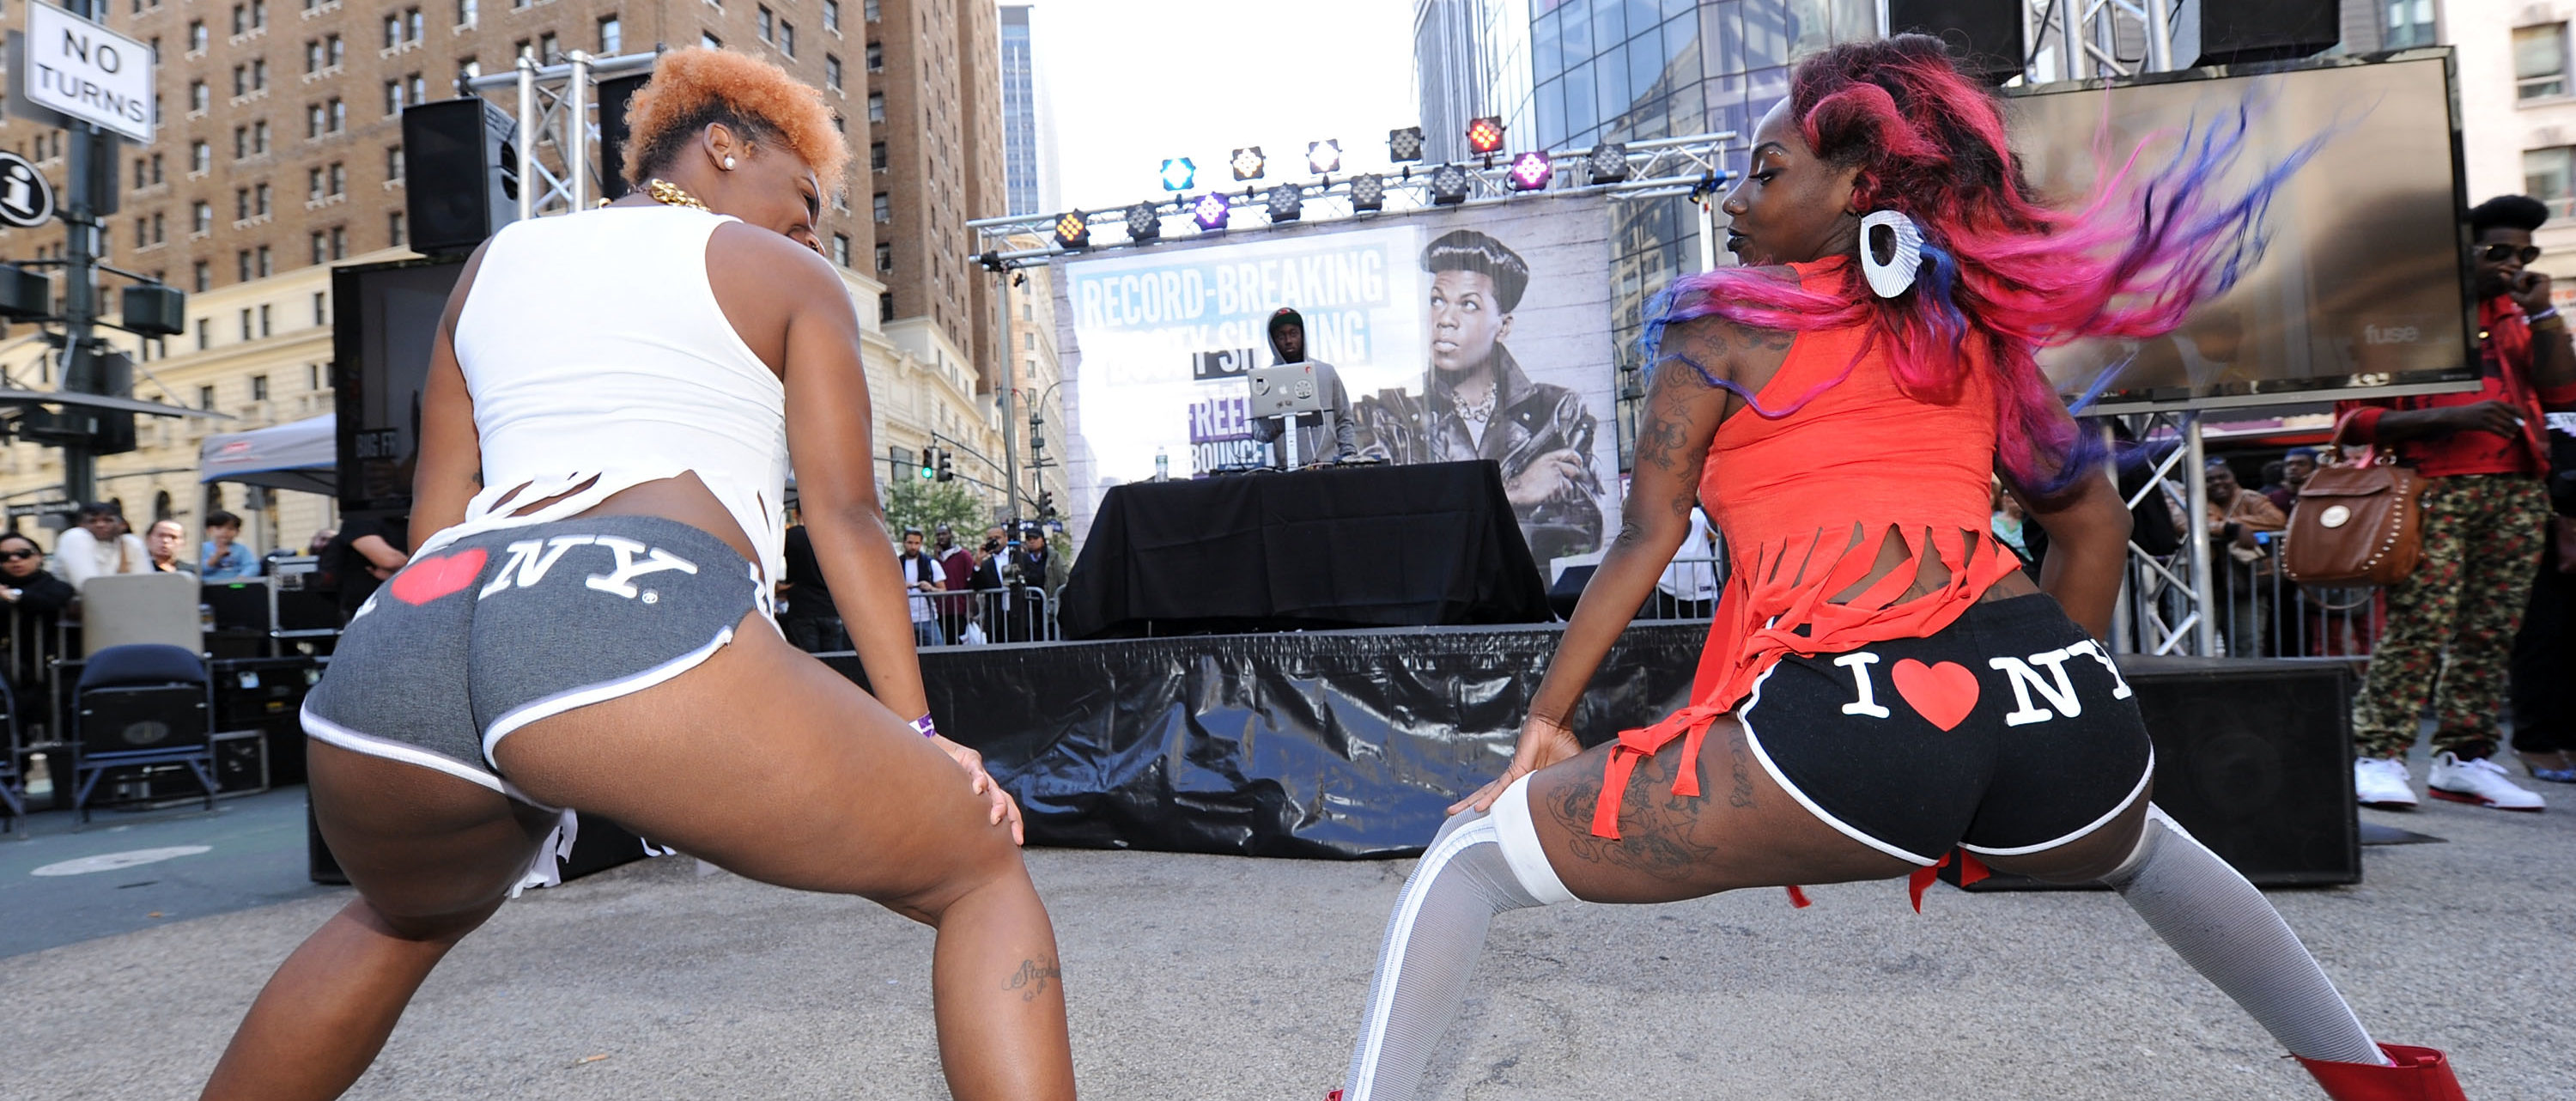 NEW YORK, NY - SEPTEMBER 25: A general view of atmosphere during the Guinness World Record And Big Freedia Twerking Event at Herald Square on September 25, 2013 in New York City. (Photo by Ilya S. Savenok/Getty Images)